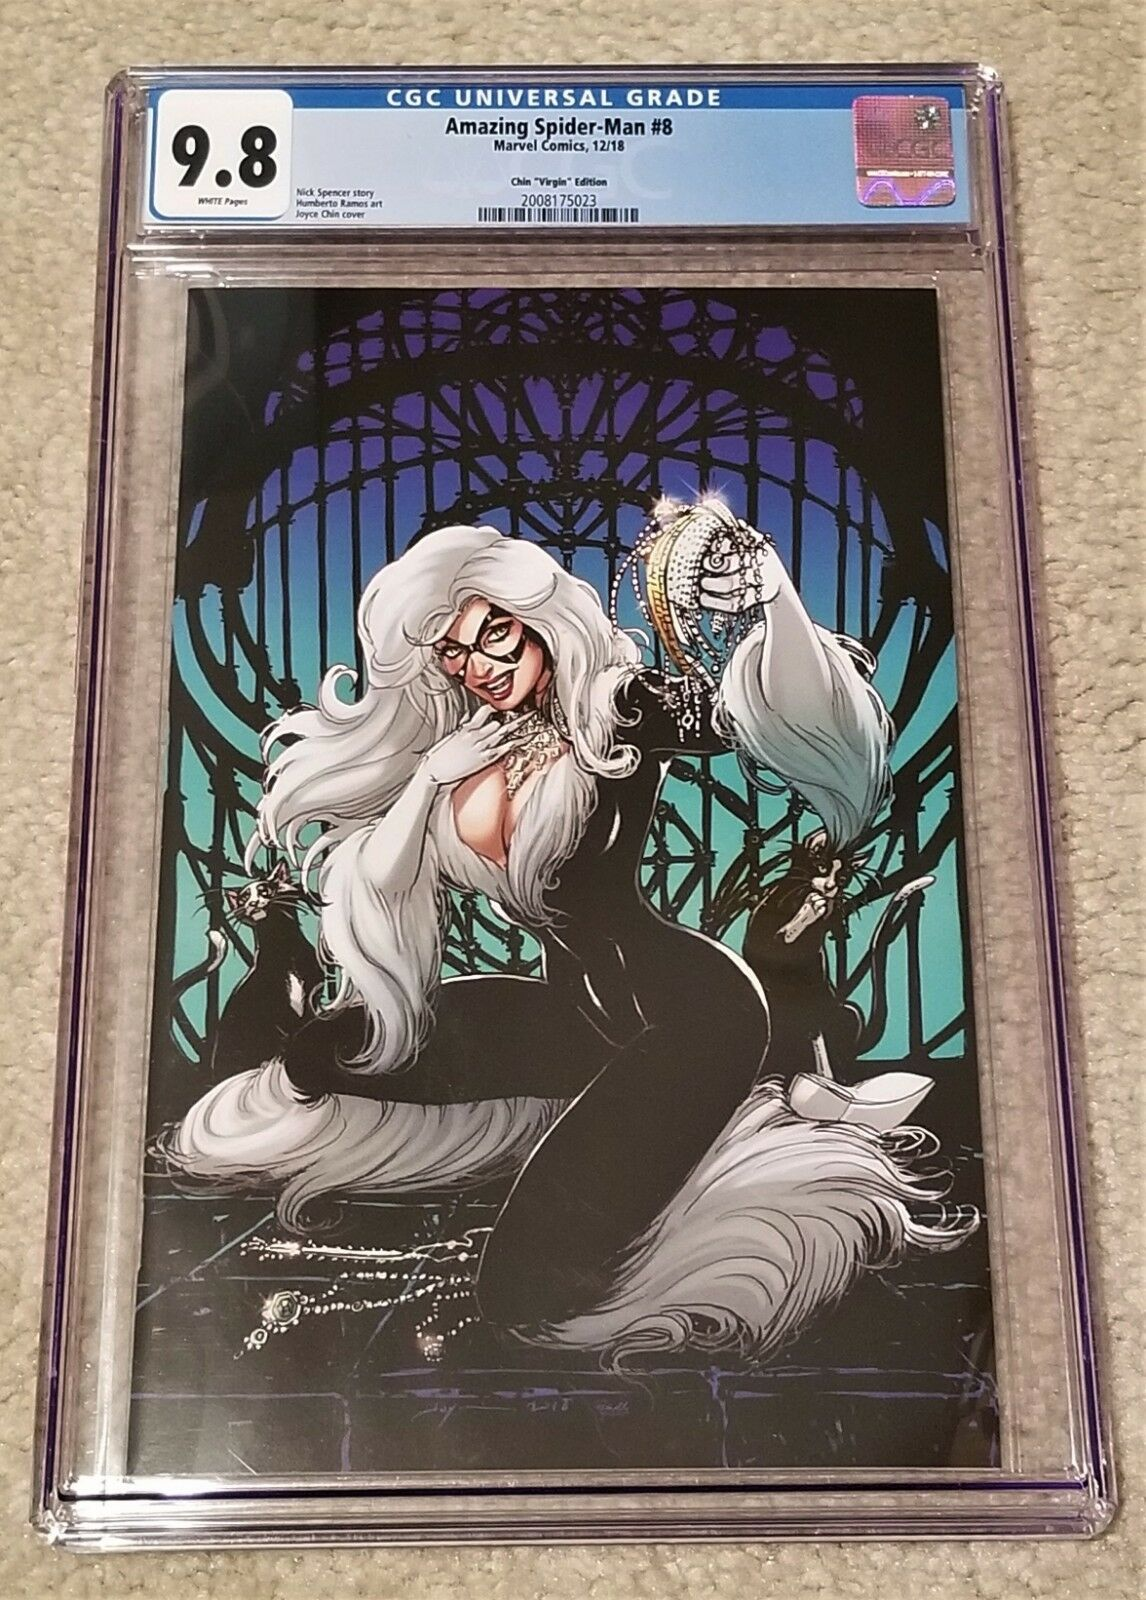 AMAZING SPIDER-MAN 8 CGC 9.8 JOYCE CHIN BLACK CAT BLUE VIRGIN VARIANT